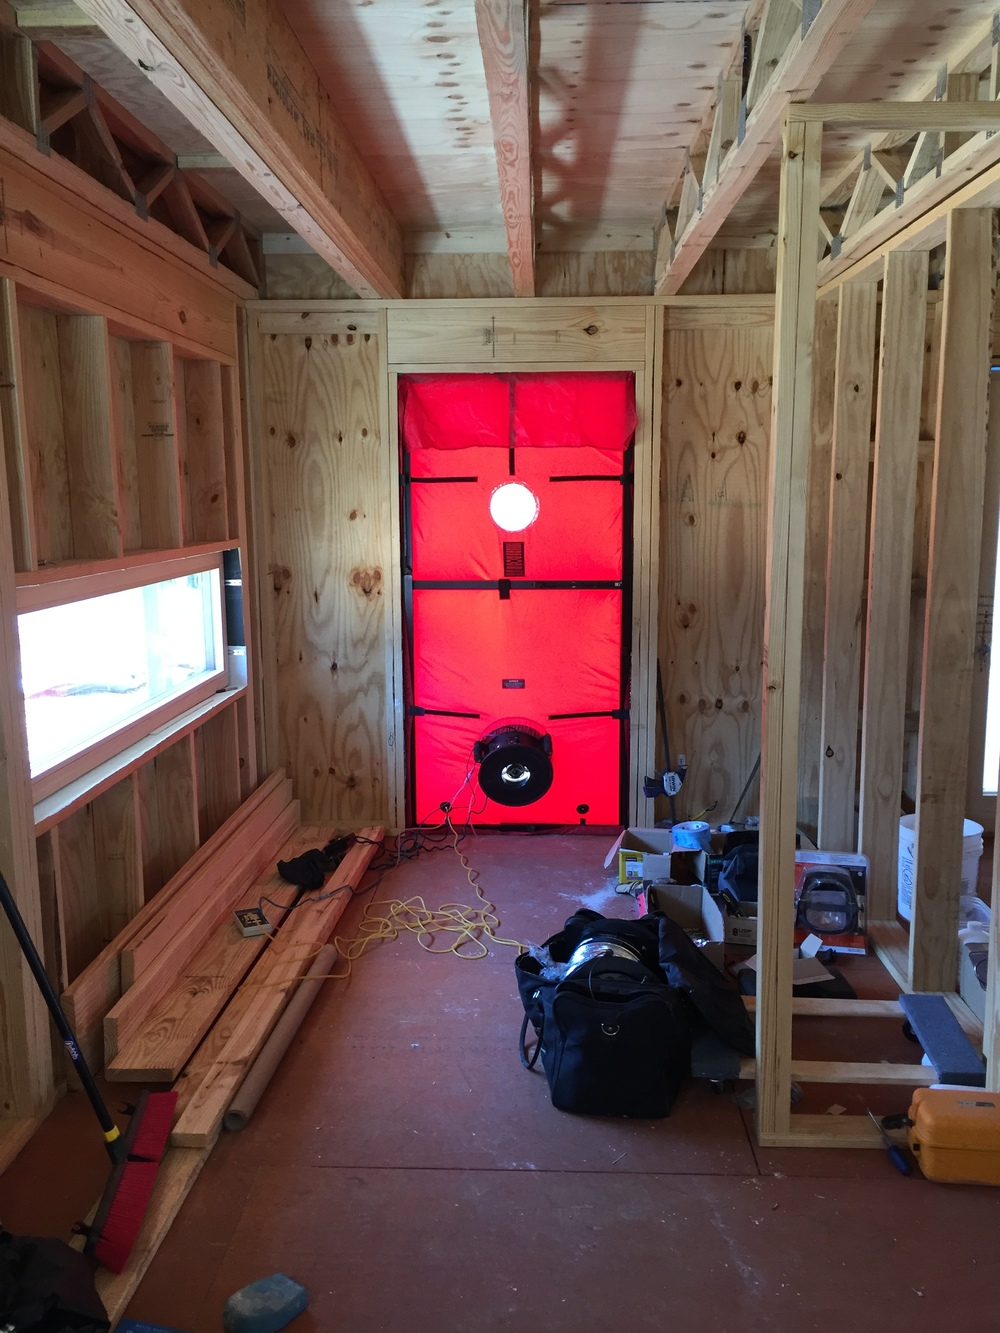 tepper passive door test architects breathes houses blower a